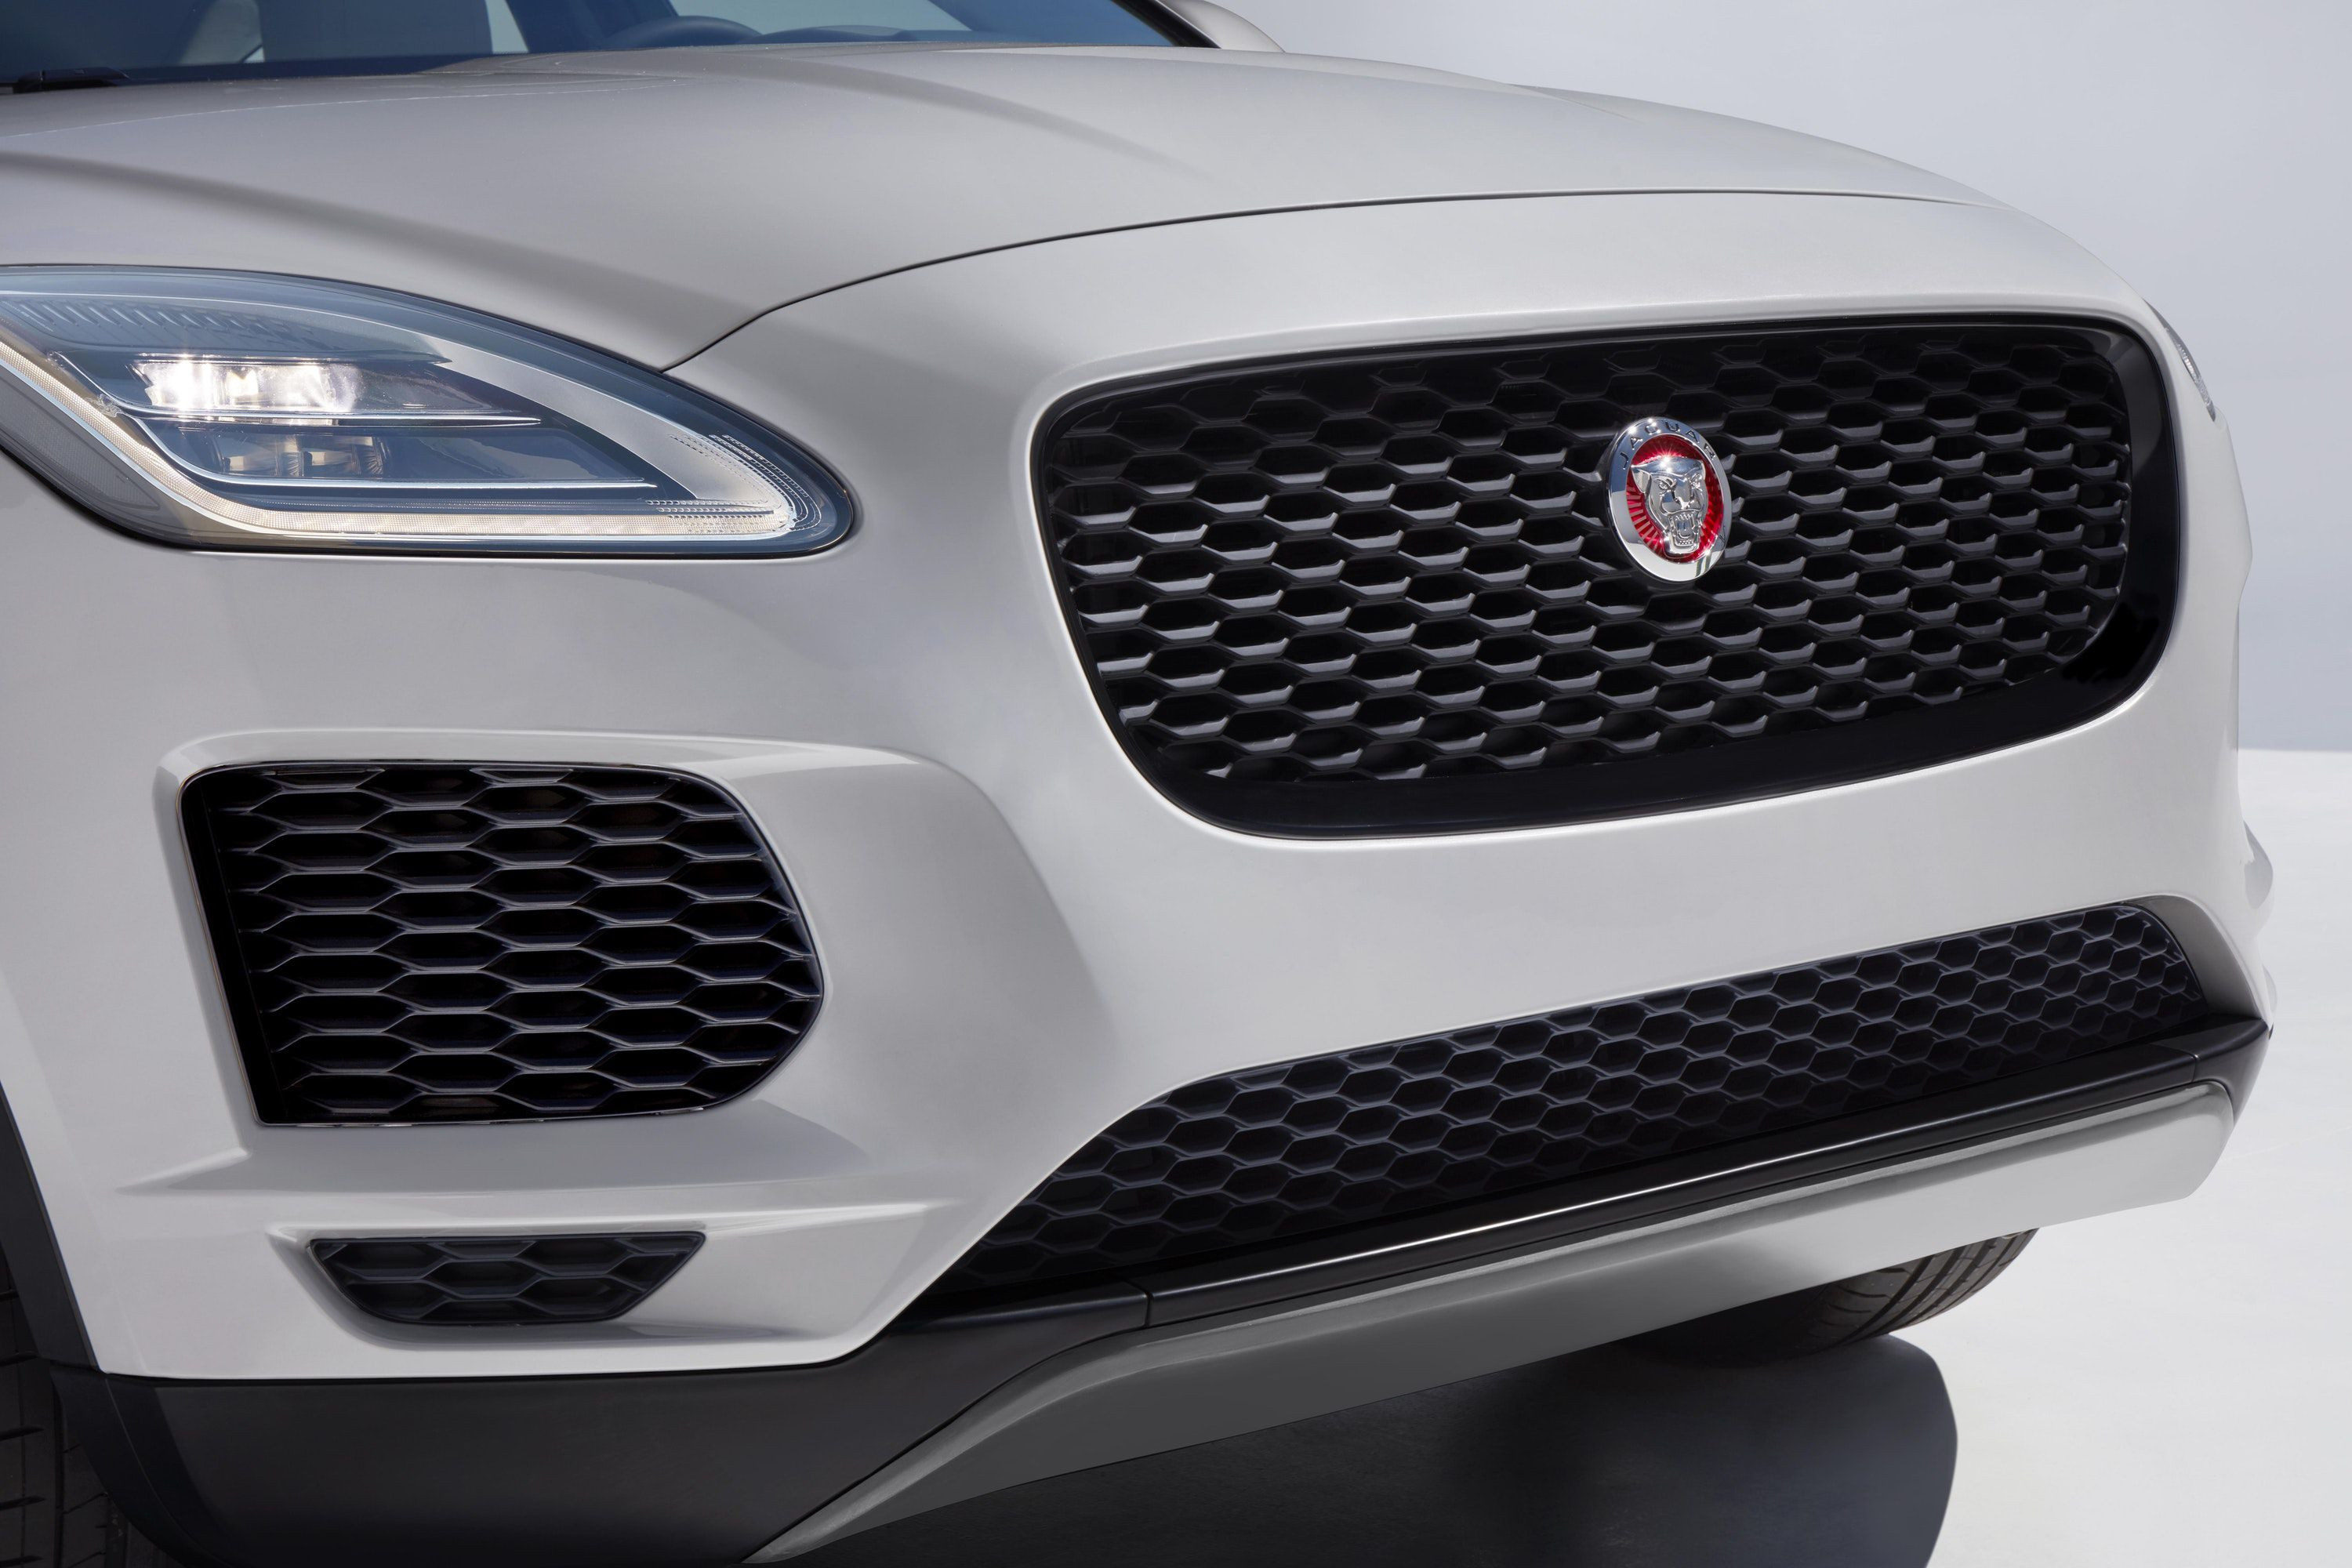 grille in front of Jaguar E-pace